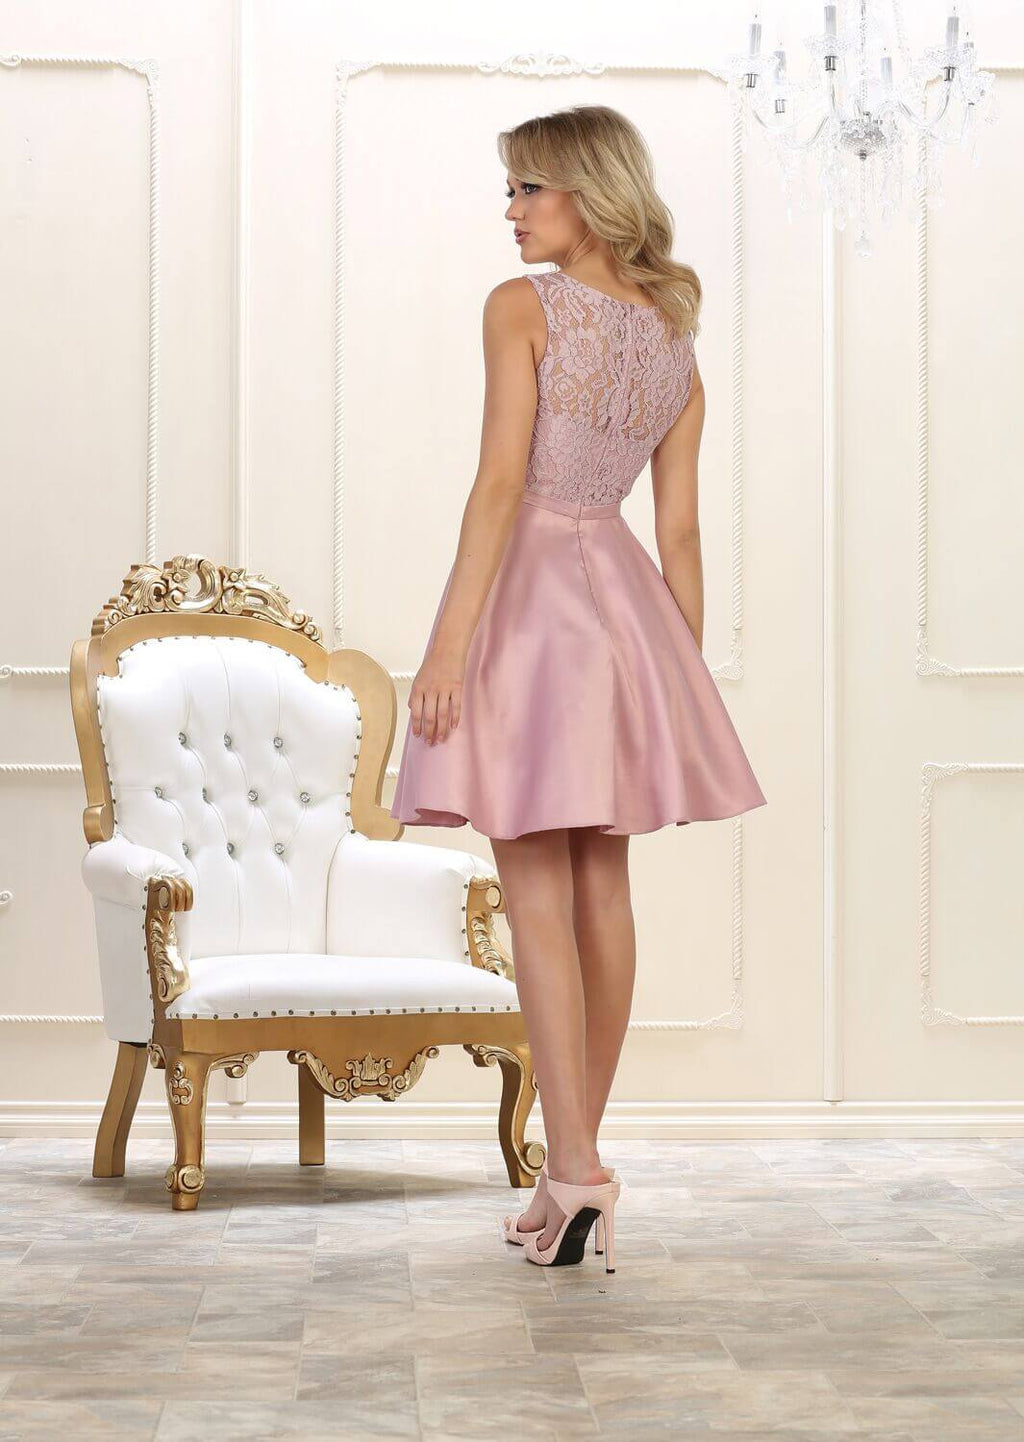 Short Prom Dress Formal Graduation Cocktail - The Dress Outlet  May Queen